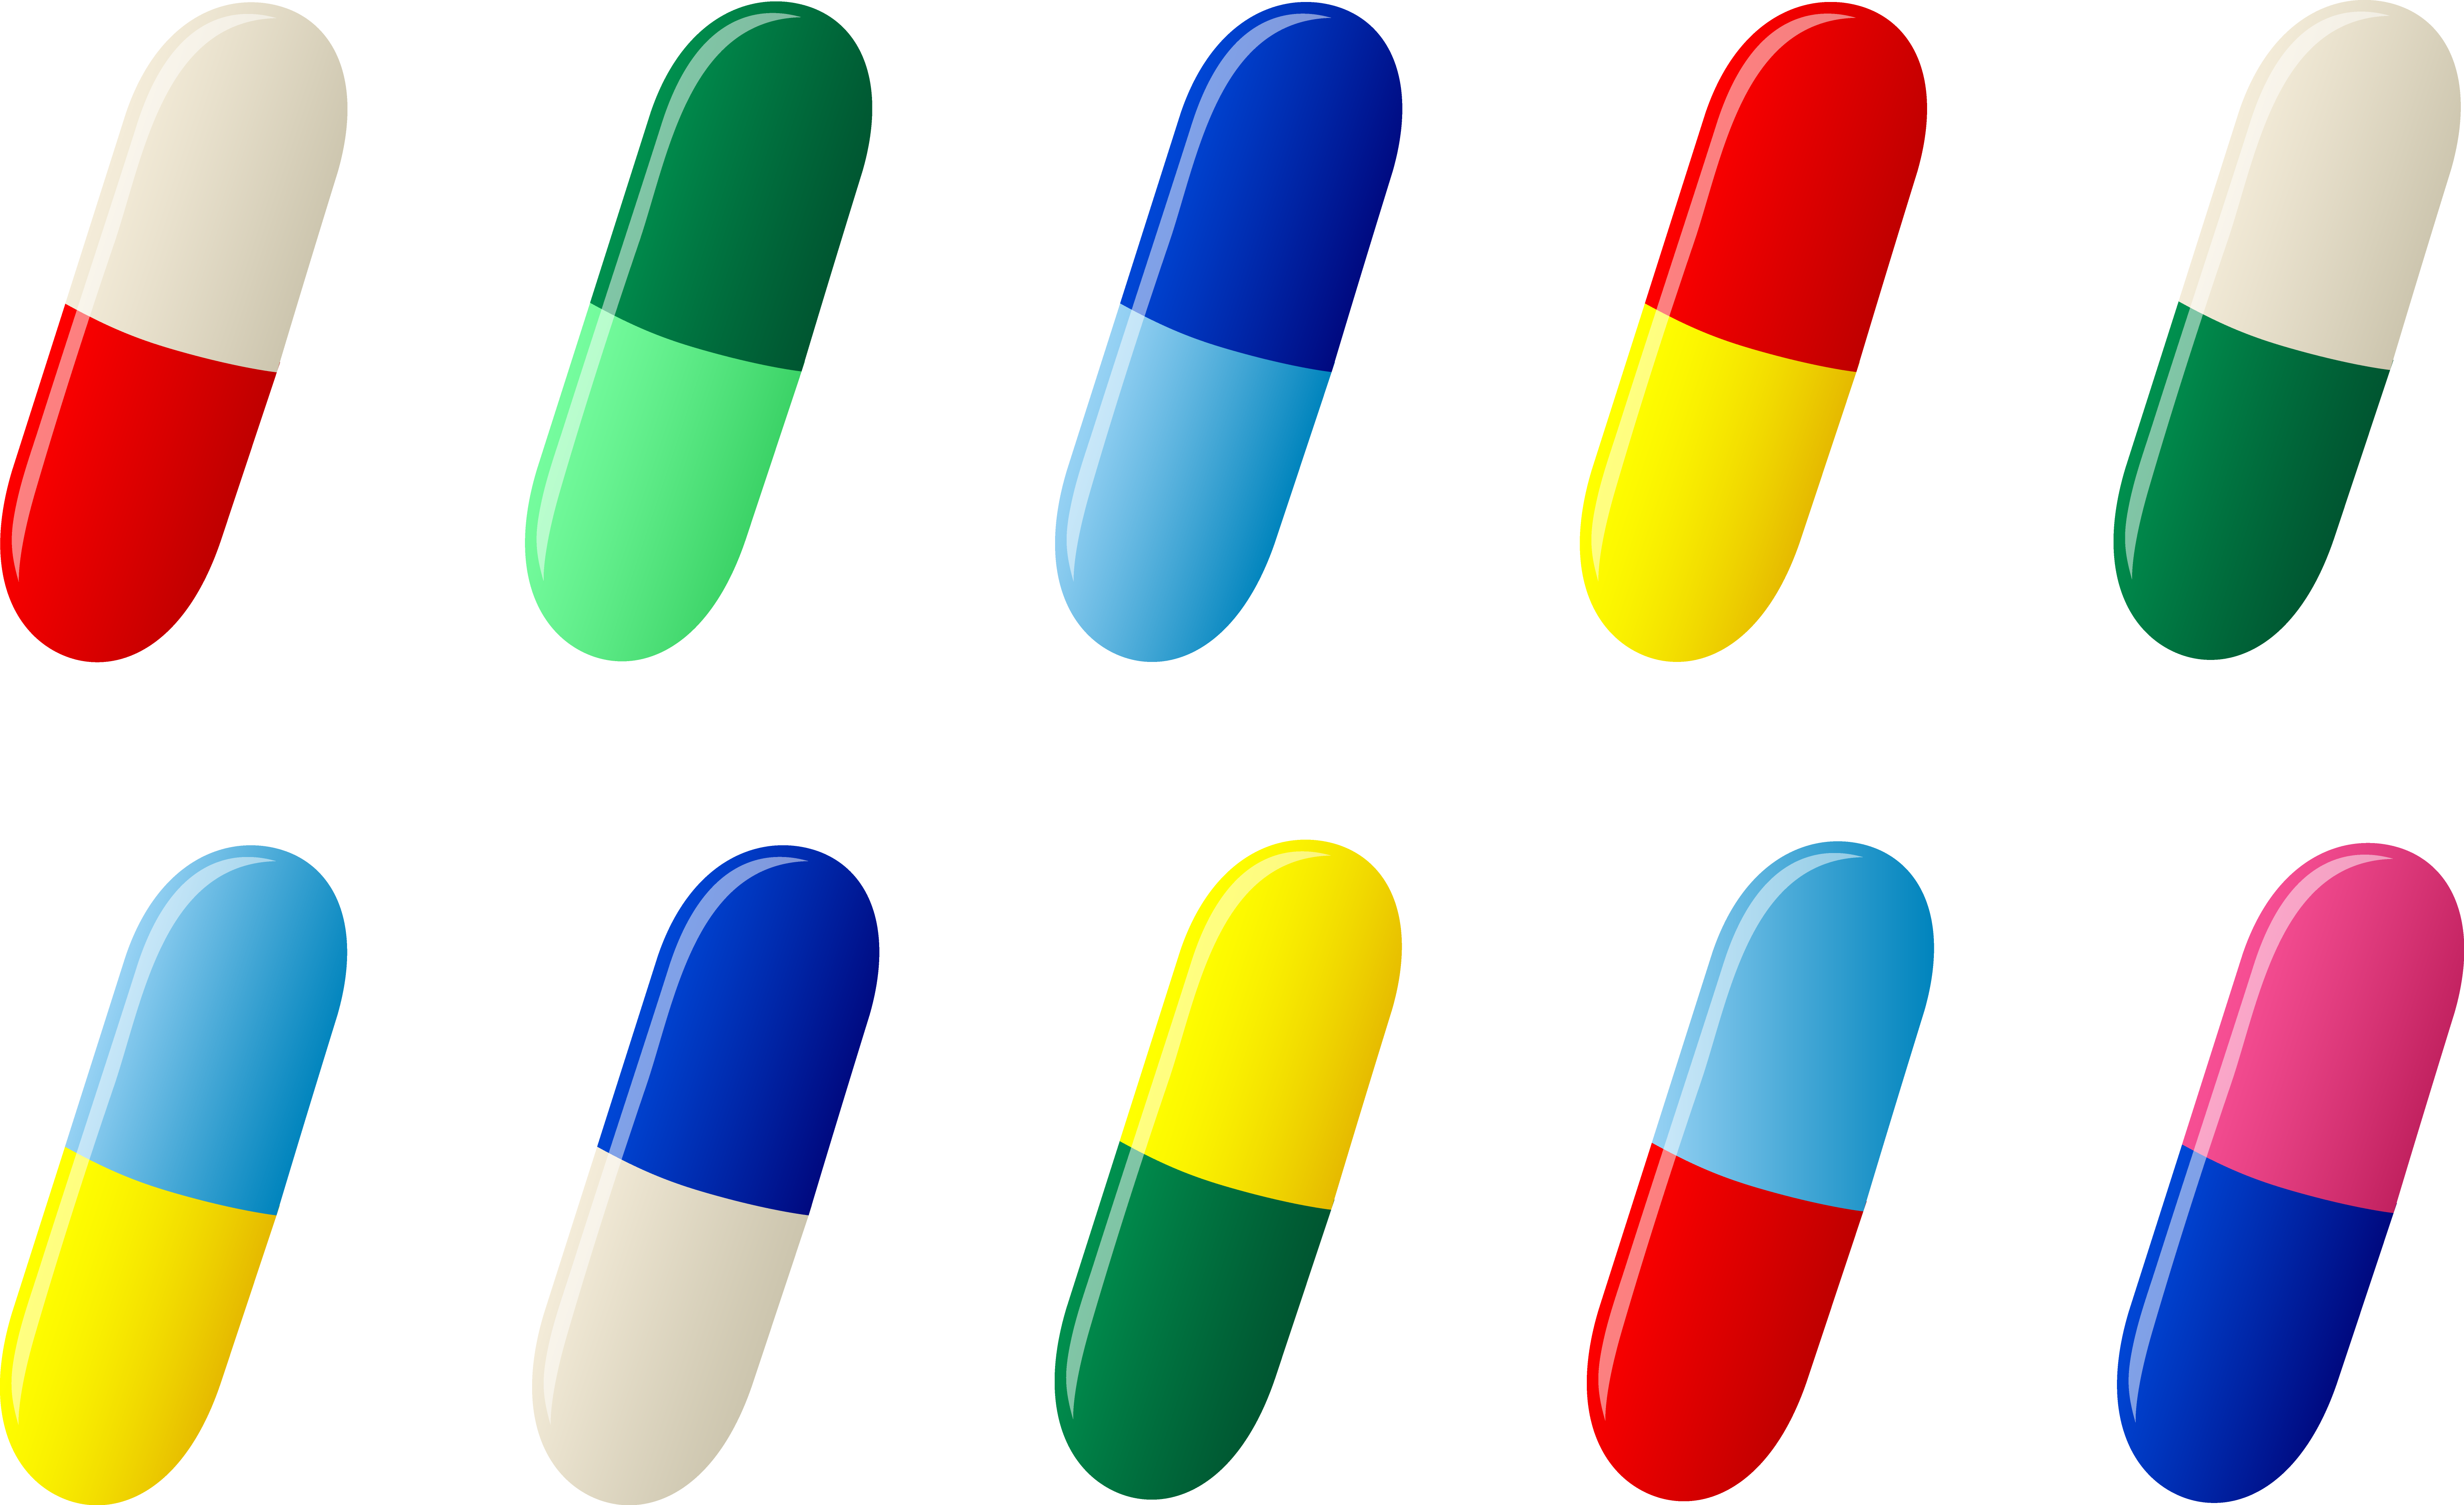 Ten capsule pill pharmaceutical. Medication clipart med